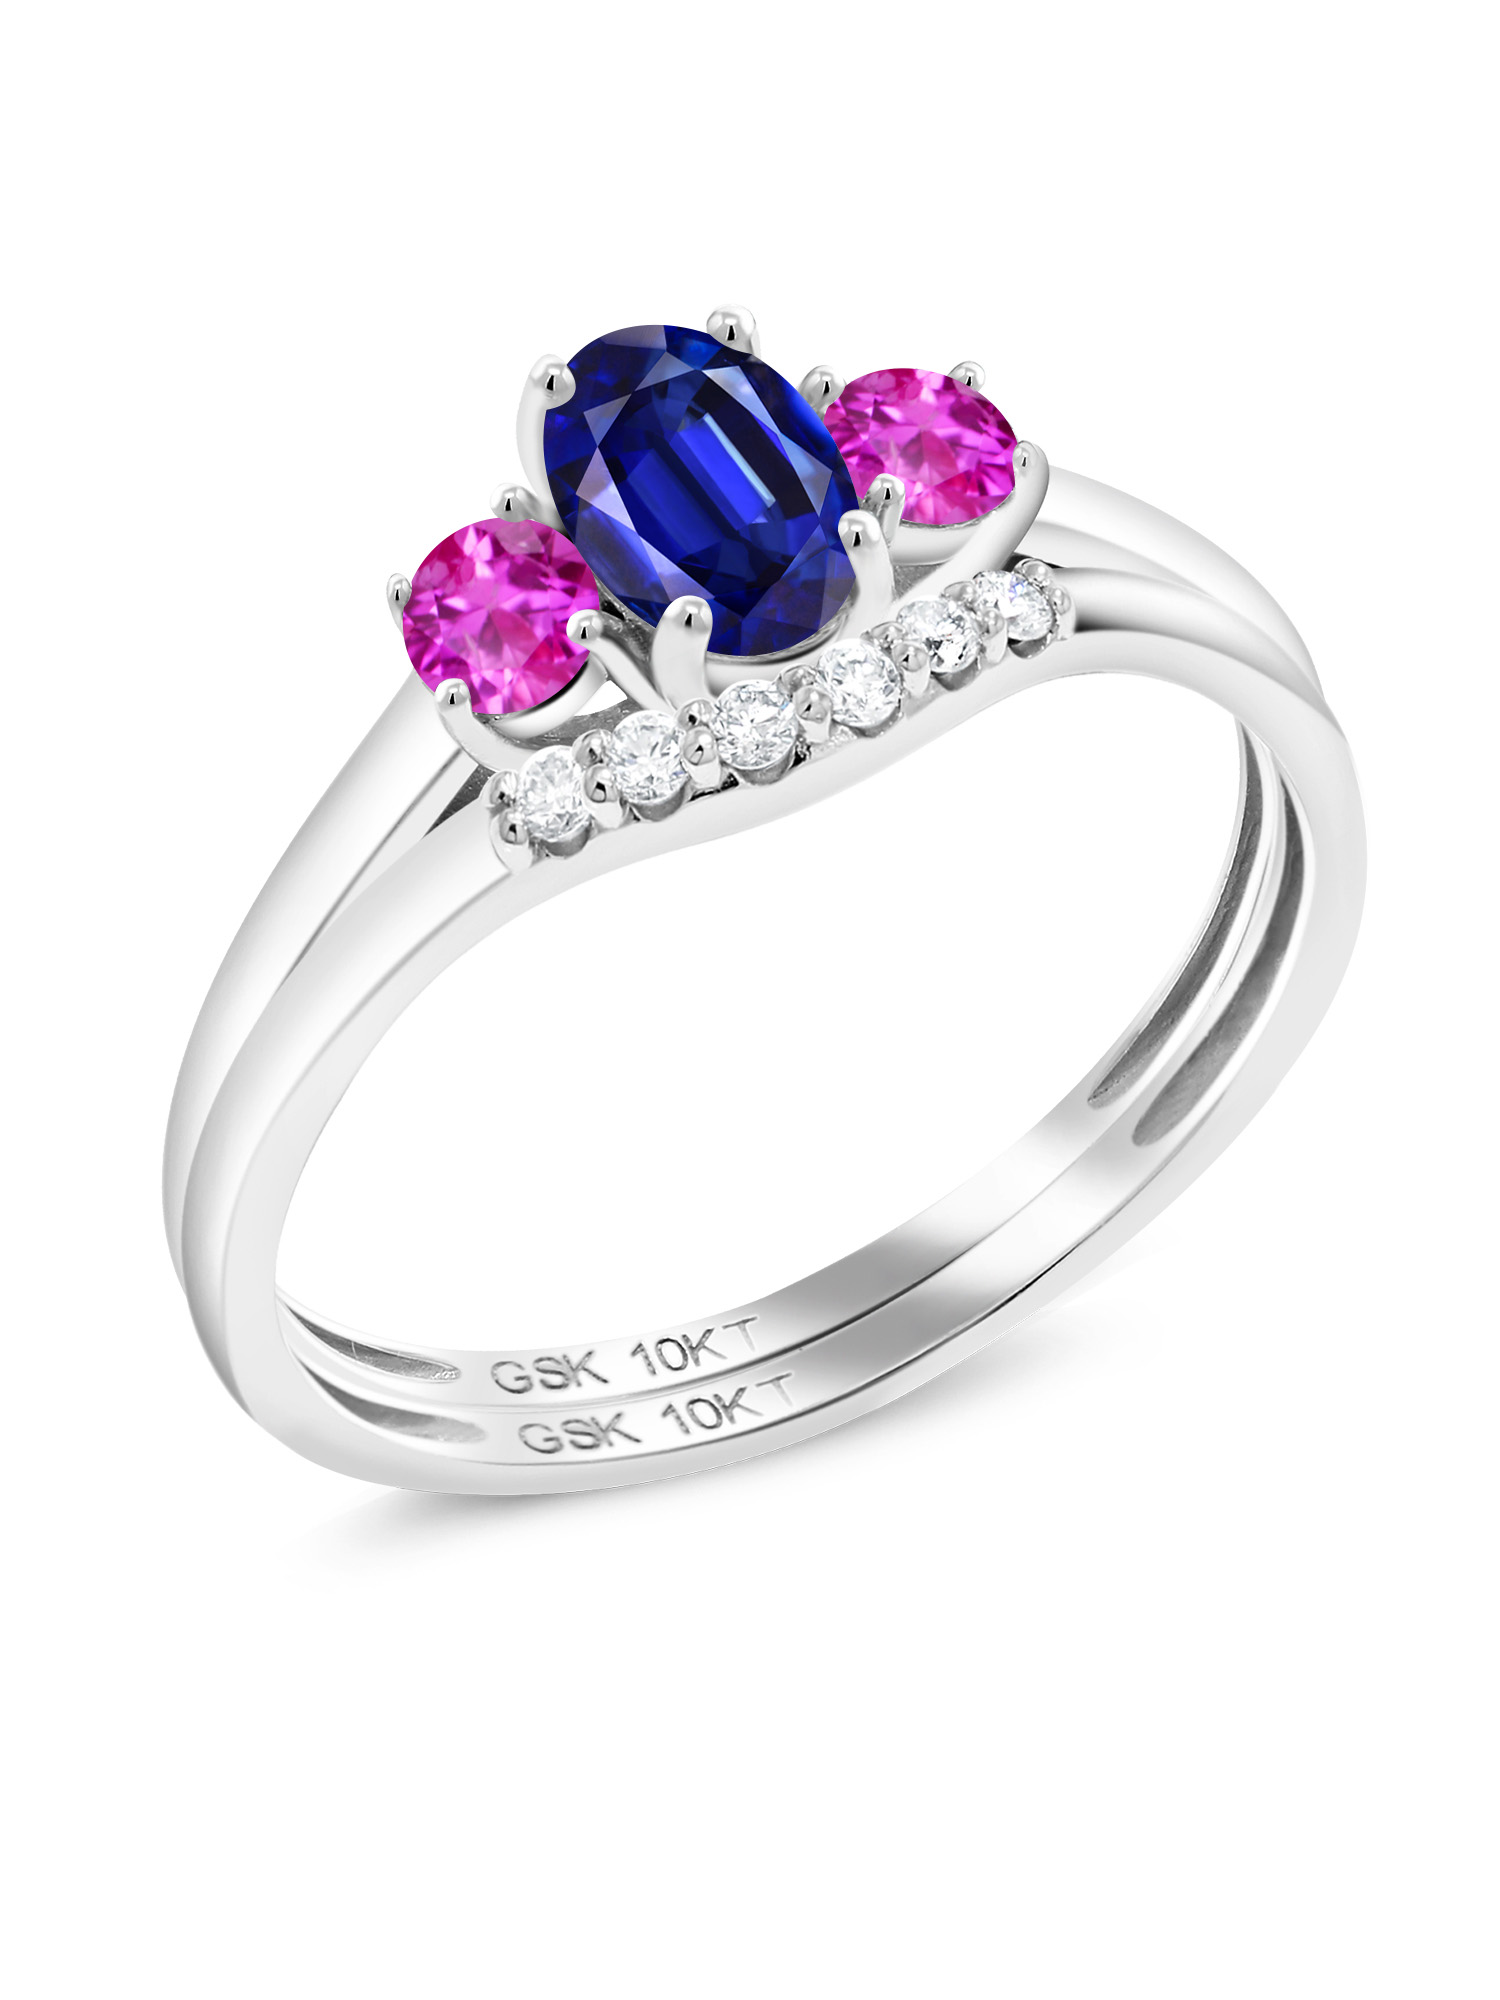 0.92 Ct Oval Blue Kyanite Pink Sapphire 10K White Gold Lab Grown Diamond Ring by